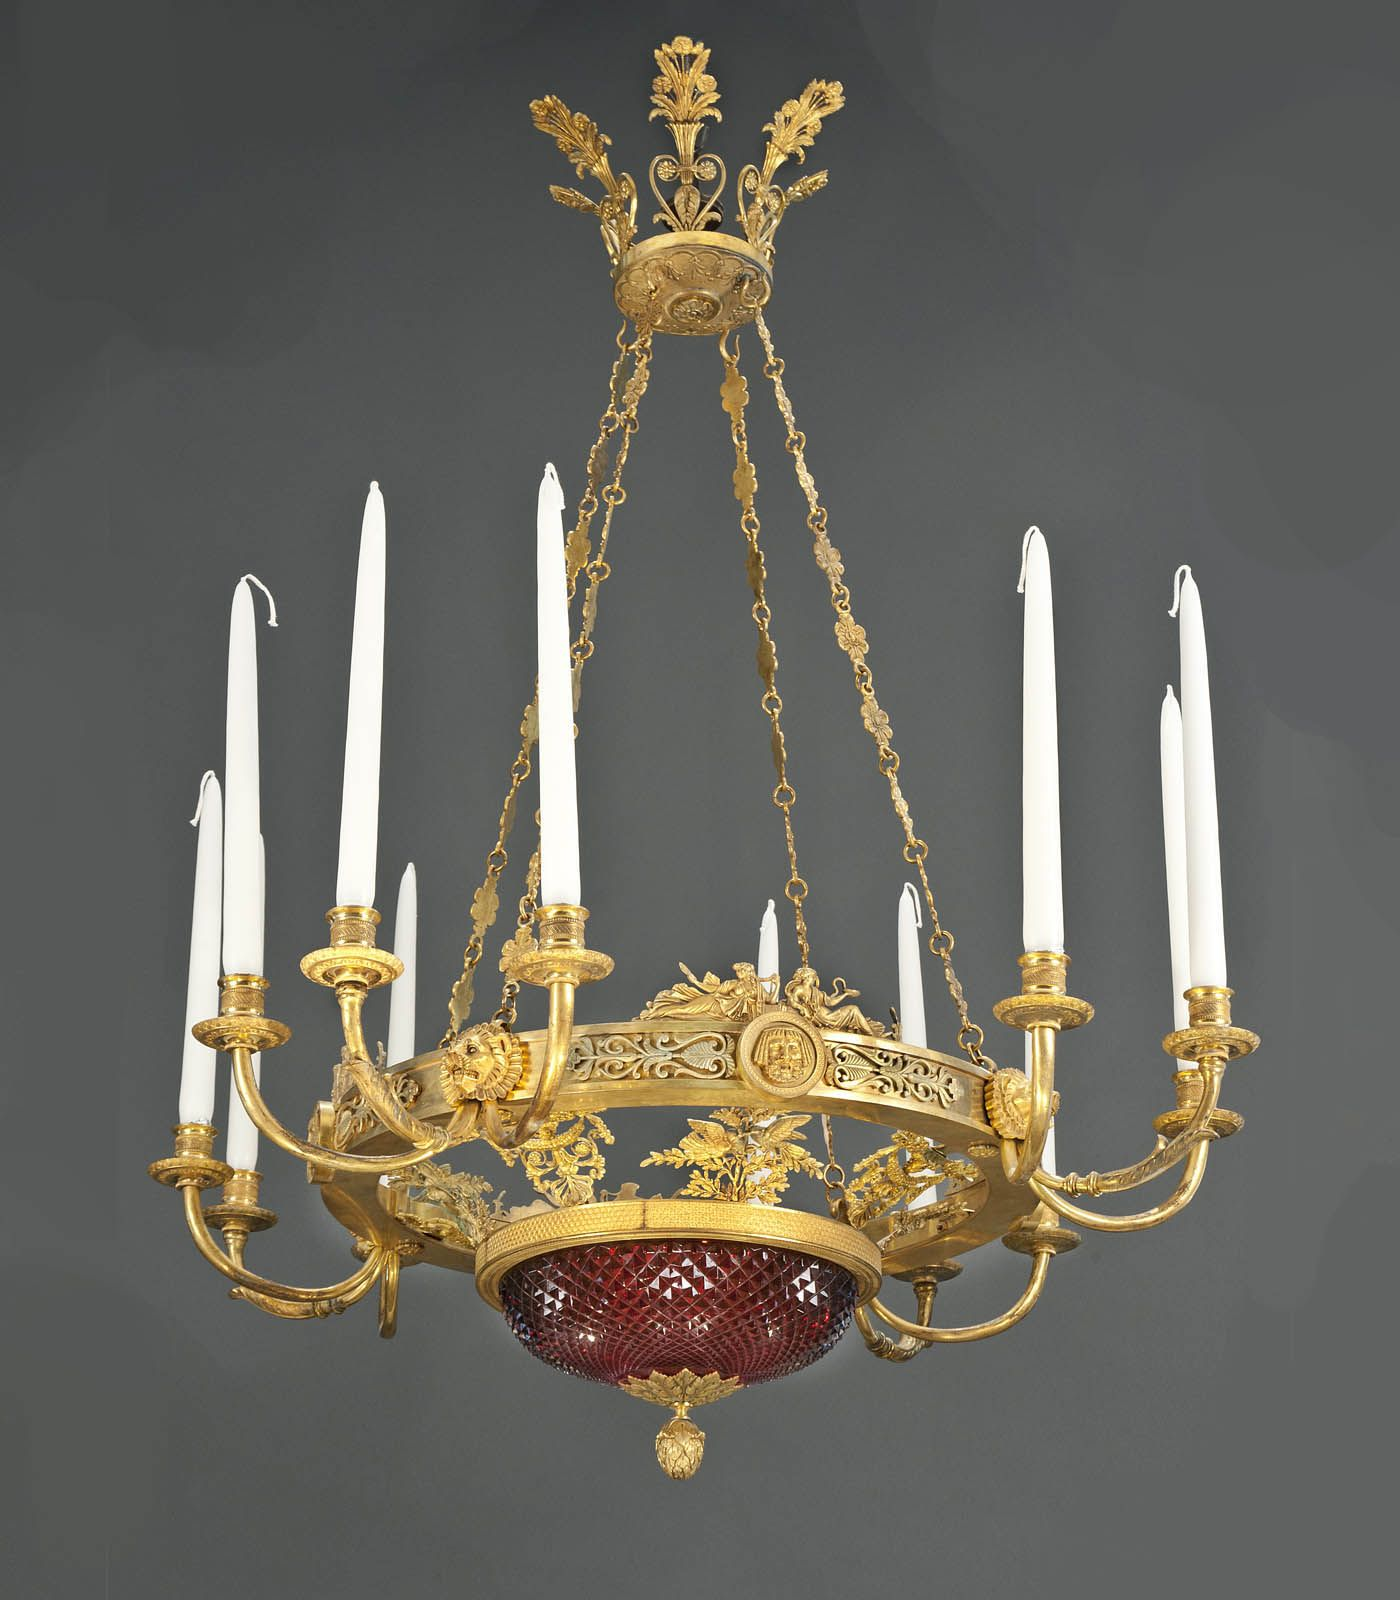 A Matched Pair of Important and Rare, Russian Empire Chandeliers by Andrei  Schreiber - A Matched Pair Of Important And Rare, Russian Empire Chandeliers